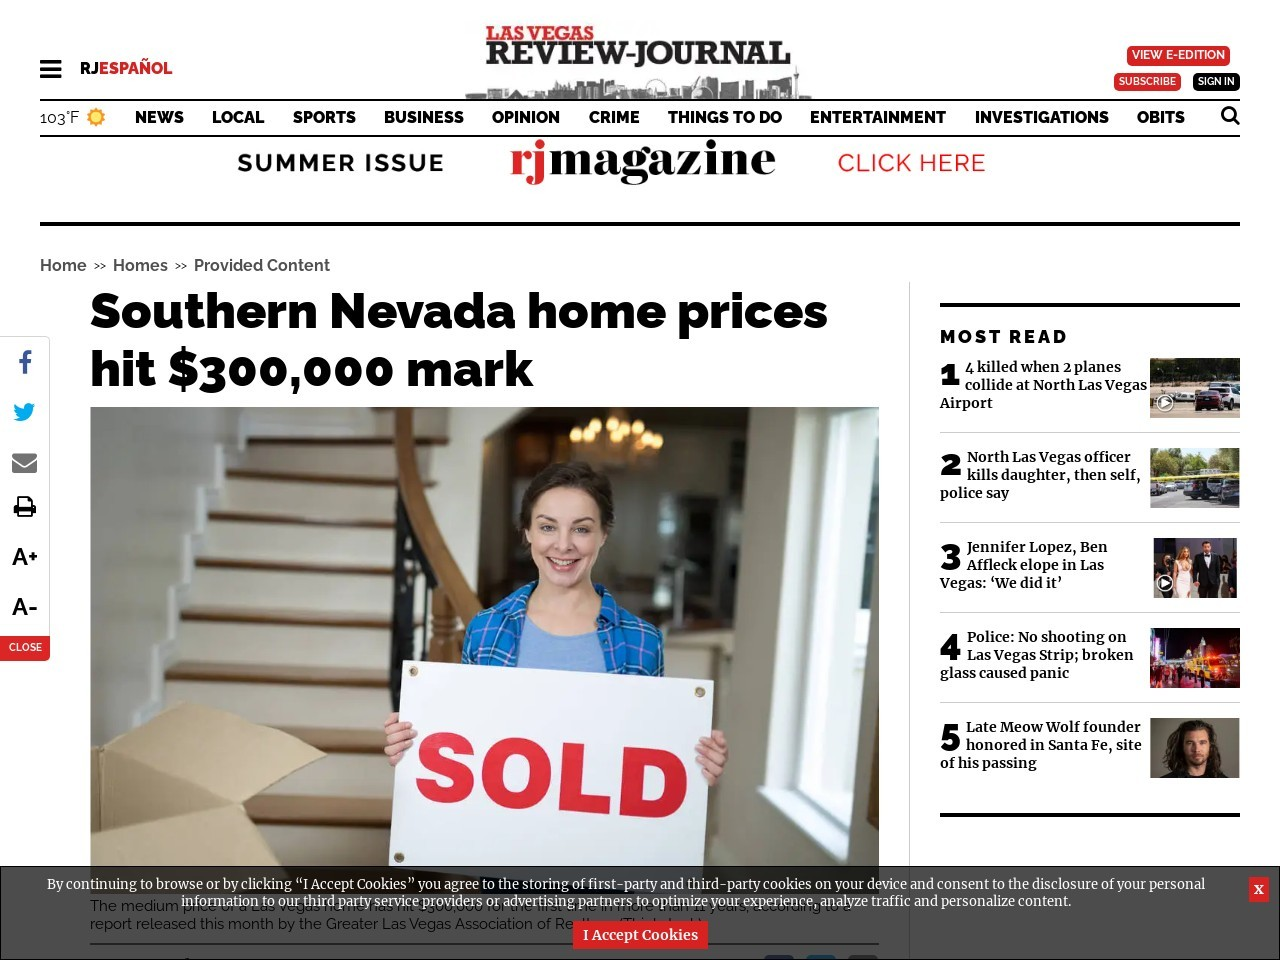 Southern Nevada home prices hit $300,000 mark